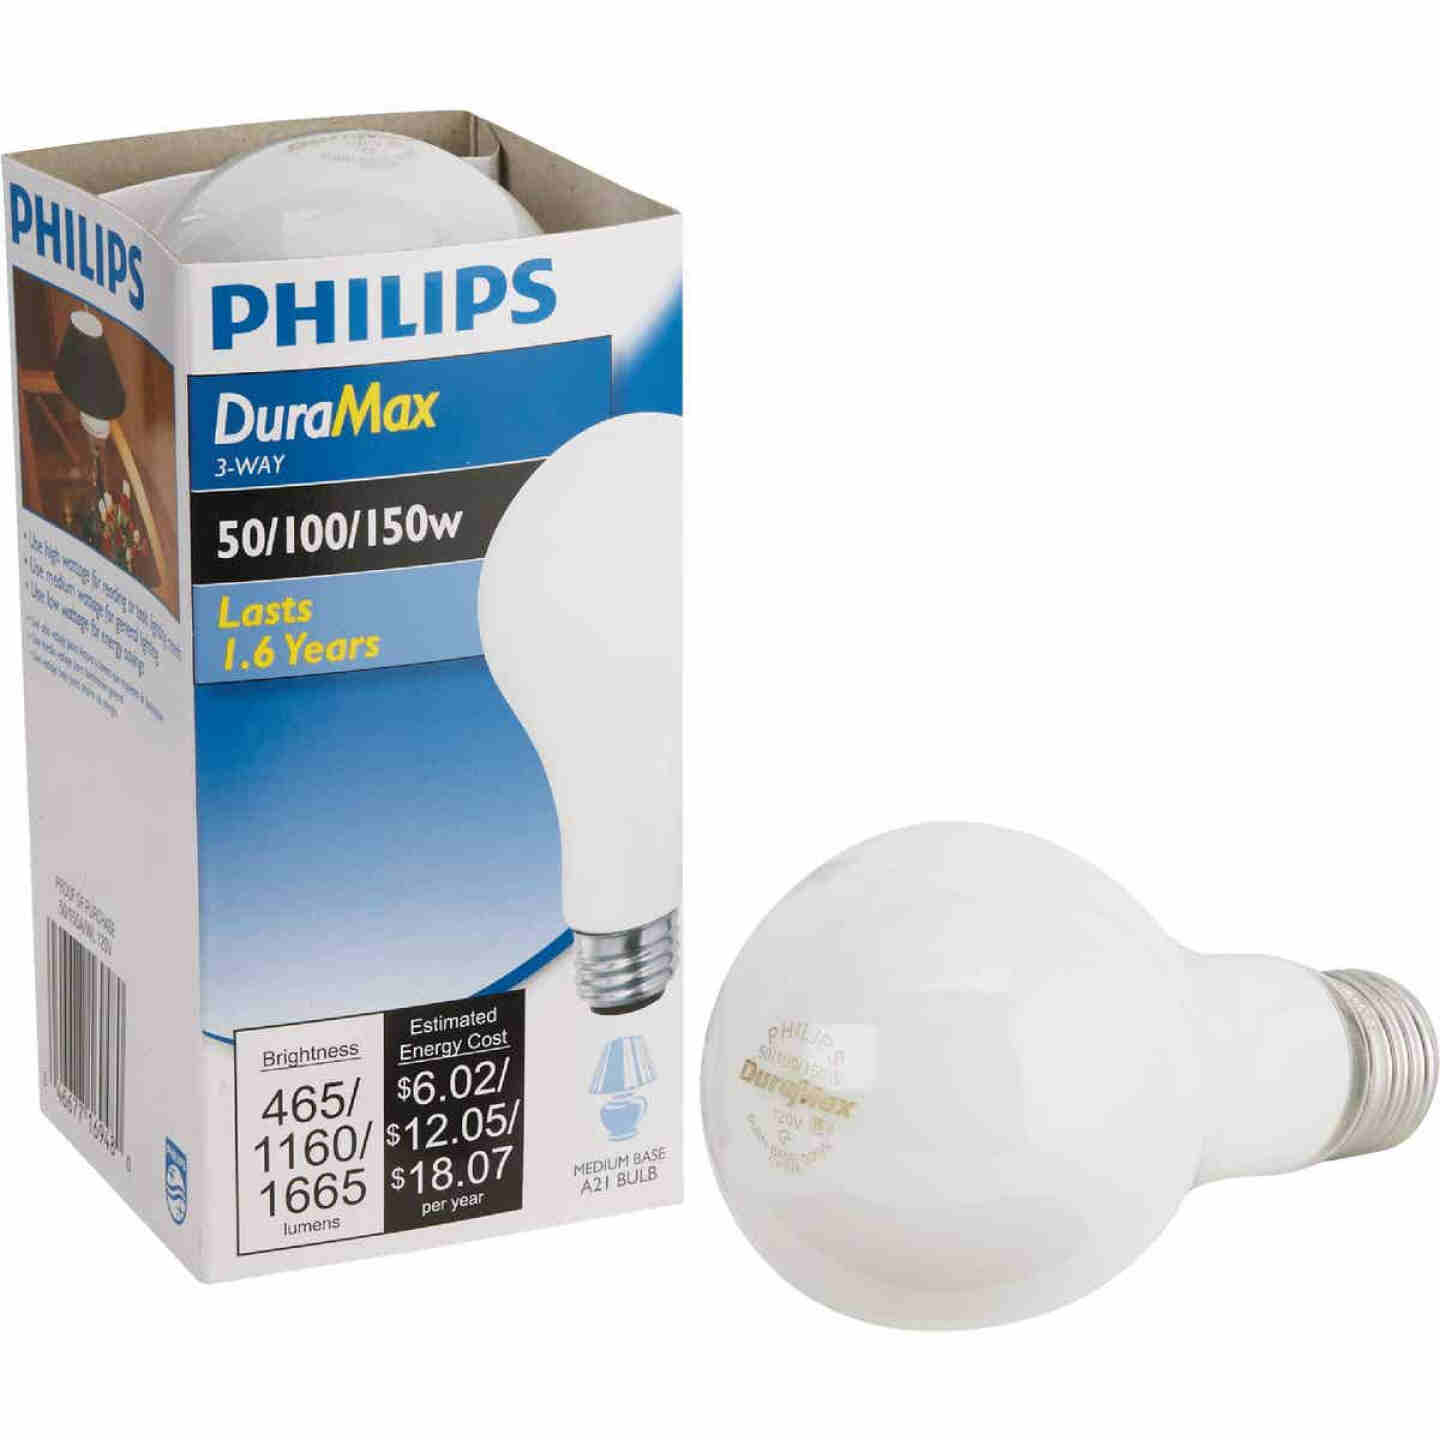 Philips Duramax 50/100/150W Frosted Soft White Medium Base A21 Incandescent 3-Way Light Bulb Image 1